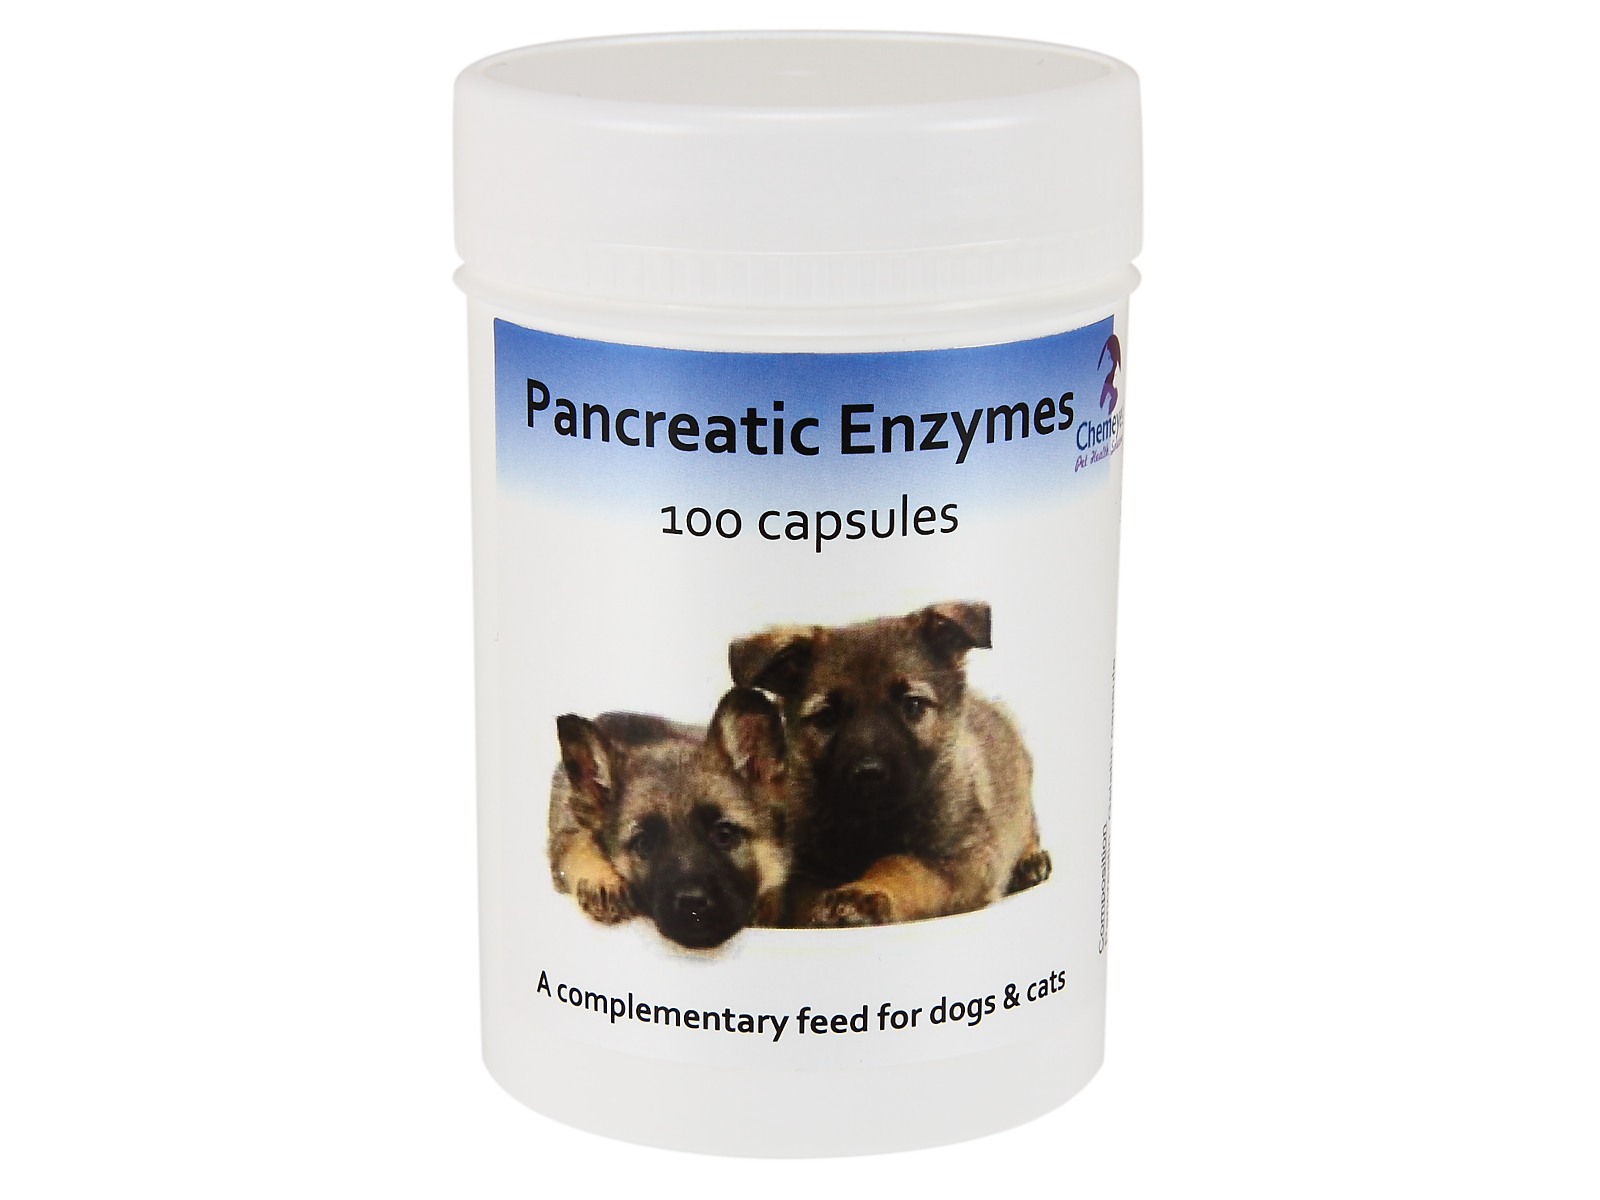 Pancreatic Enzyme Capsules can be used to supplement the